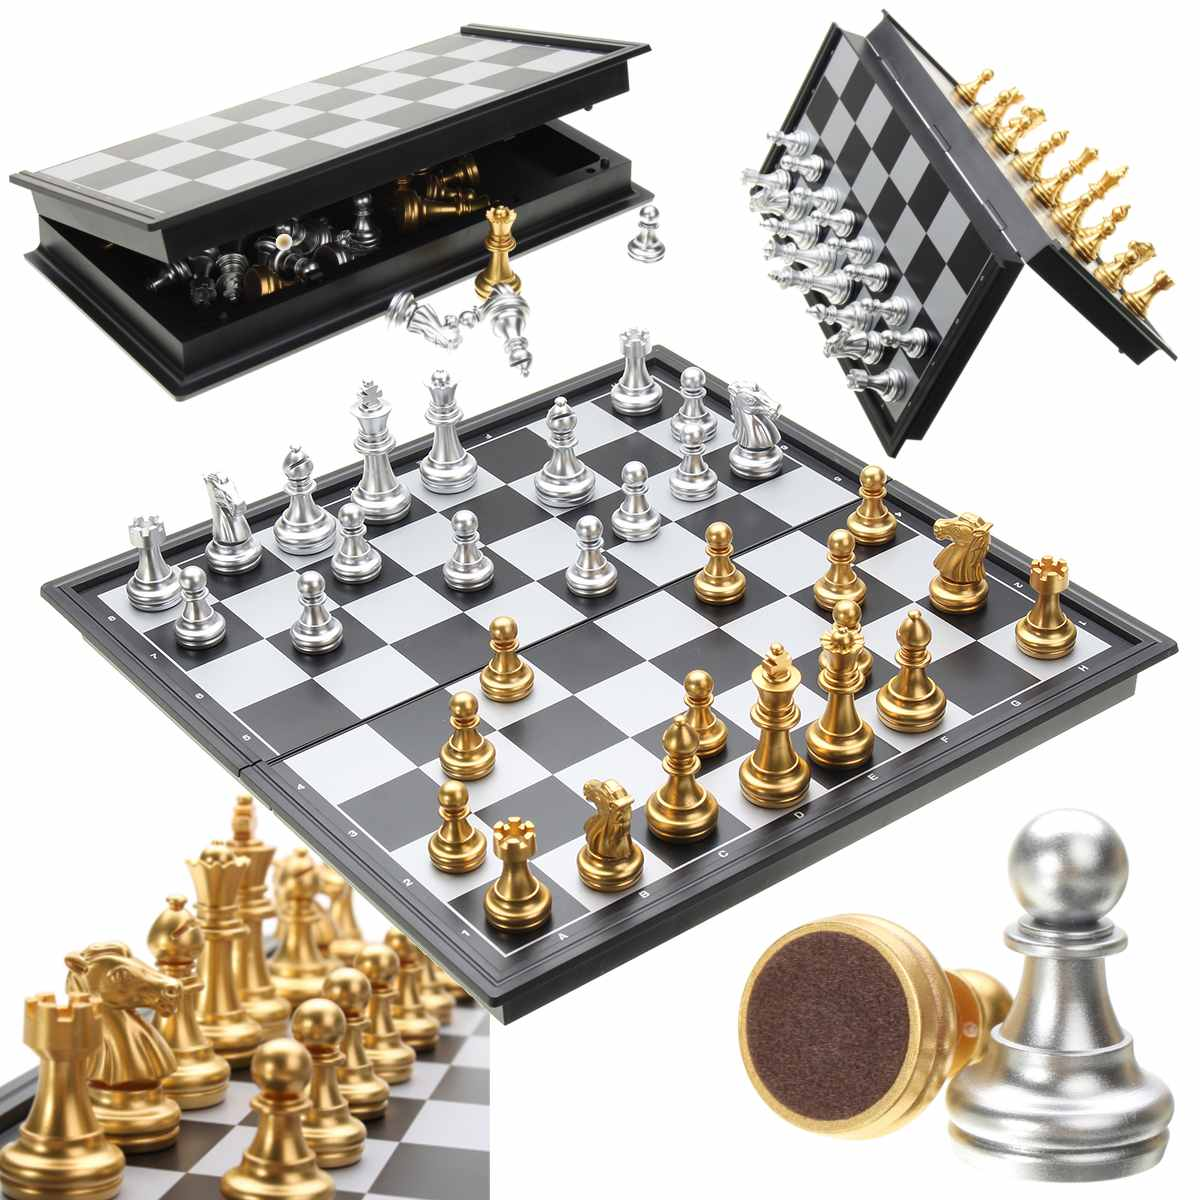 25x25cm Hot Folding Magnetic Travel Chess Set For Kids Or Ad…